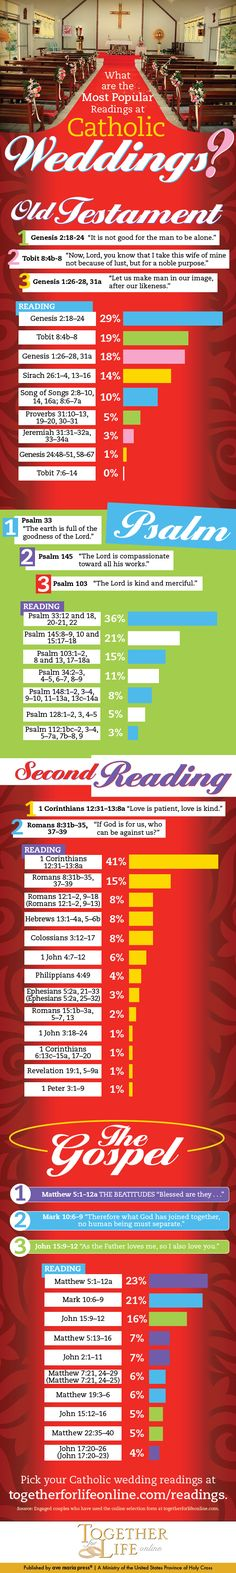 The Most Popular Catholic Wedding Readings (Infographic) via Together for Life Online